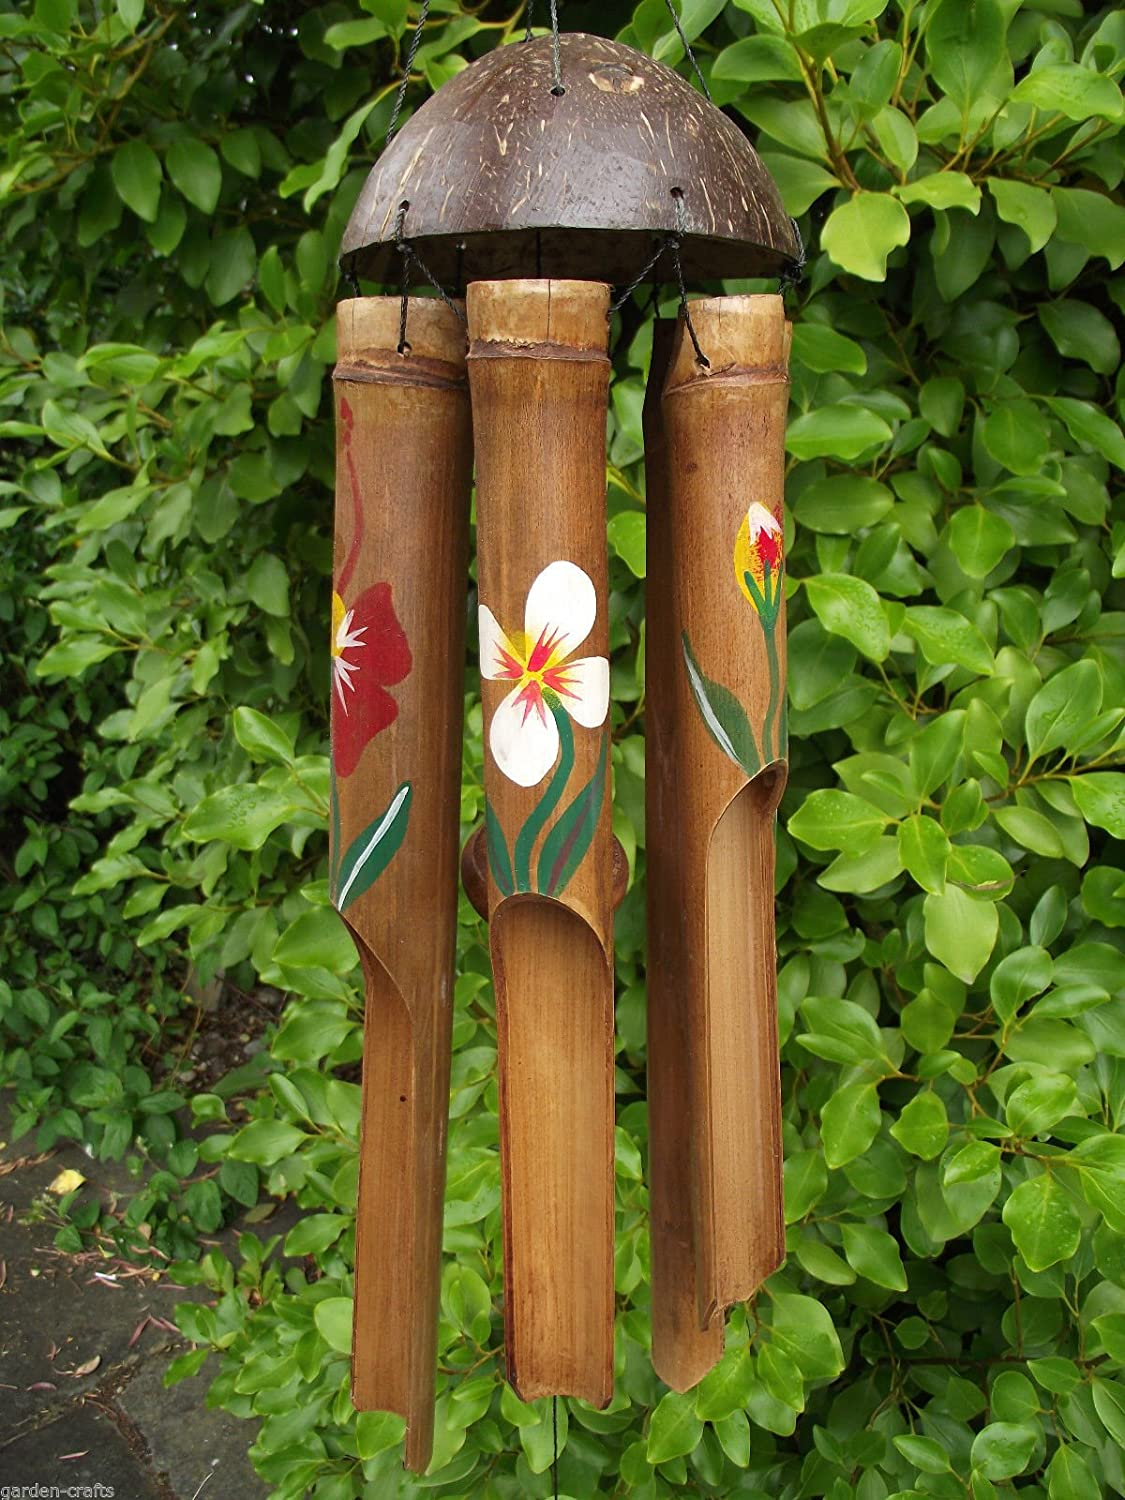 COLOURFUL HIBISCUS FLOWER BAMBOO WIND CHIME - Fair Trade & Handmade - 45cm, FREE POST!